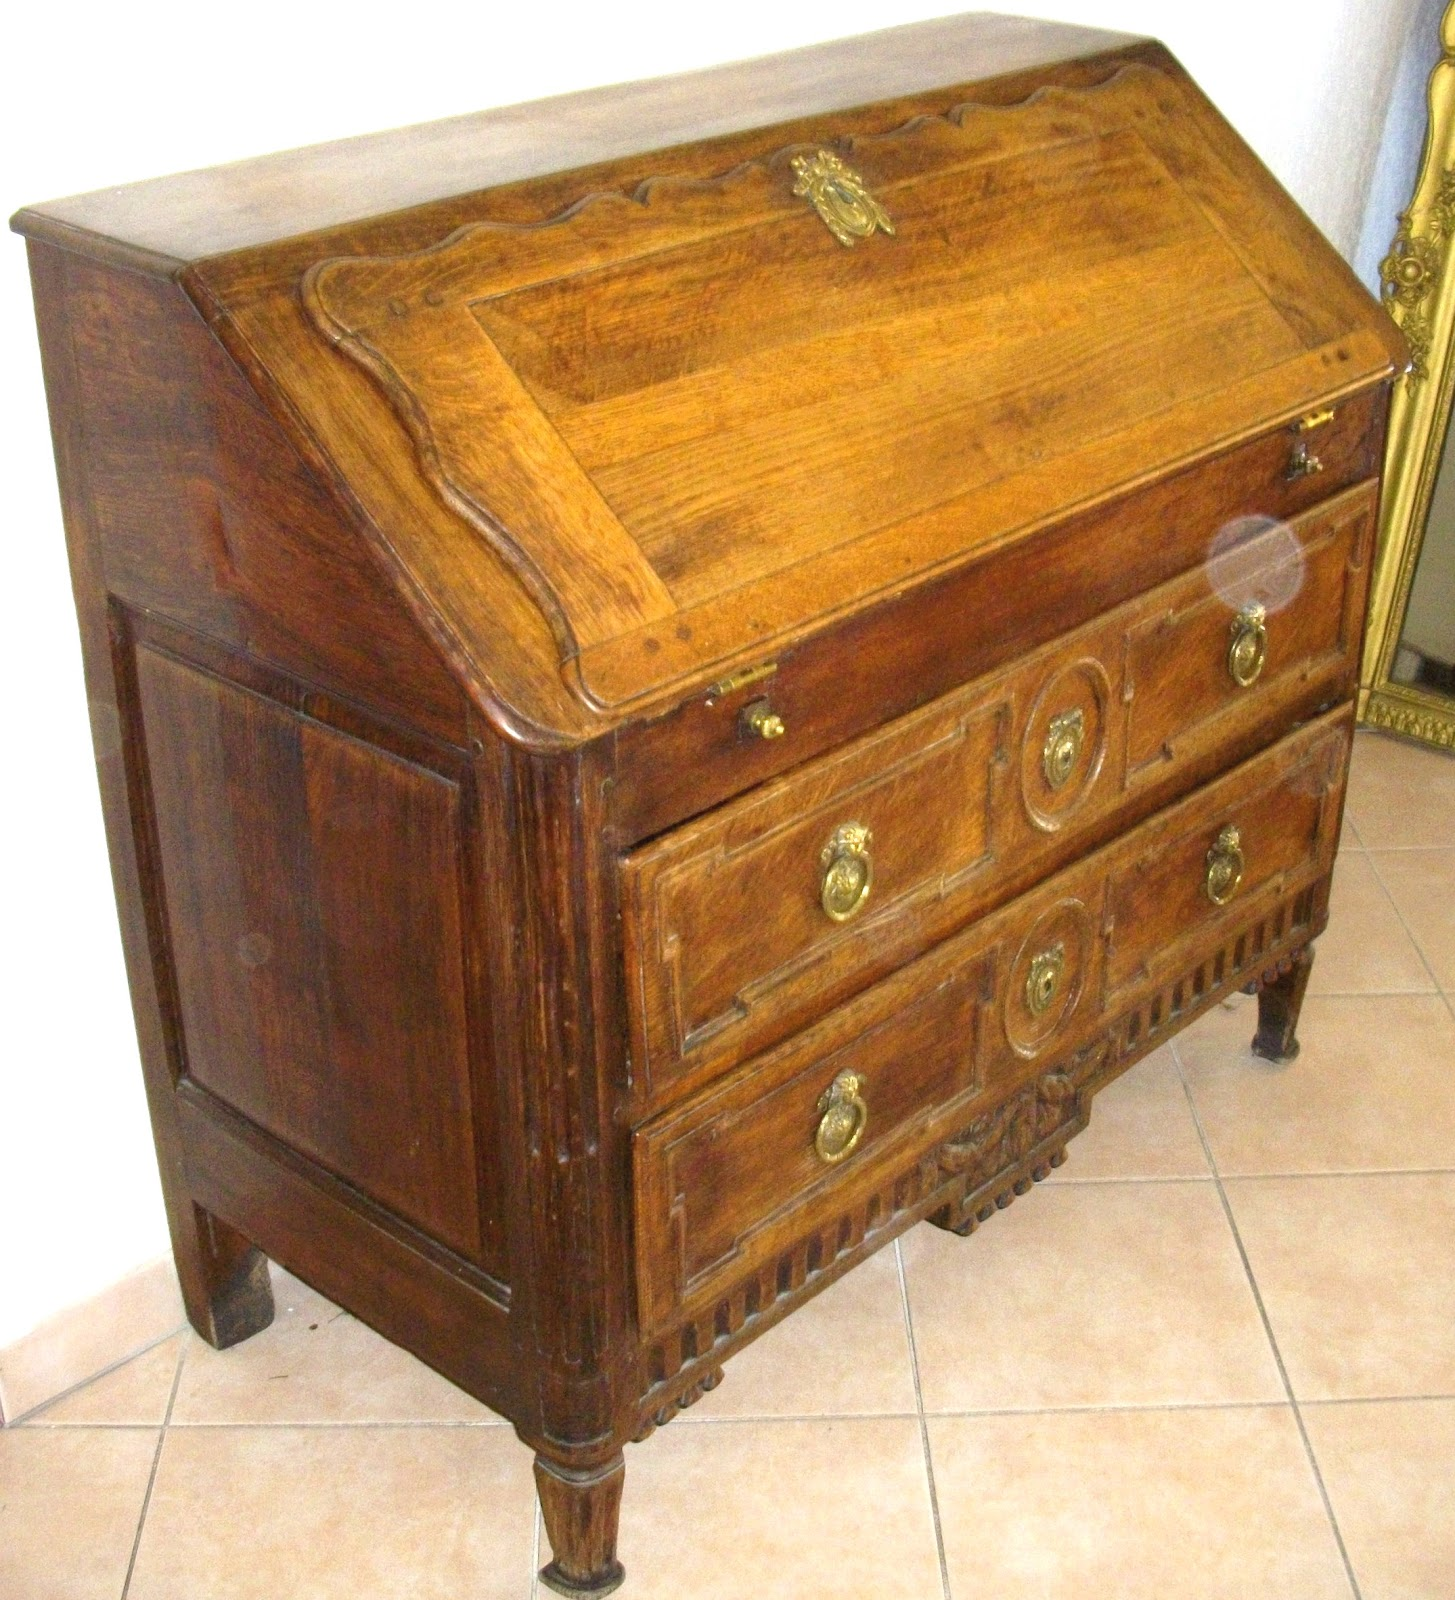 Meuble ancien bureau pente secr taire dos d 39 ane a secret for Meuble bureau